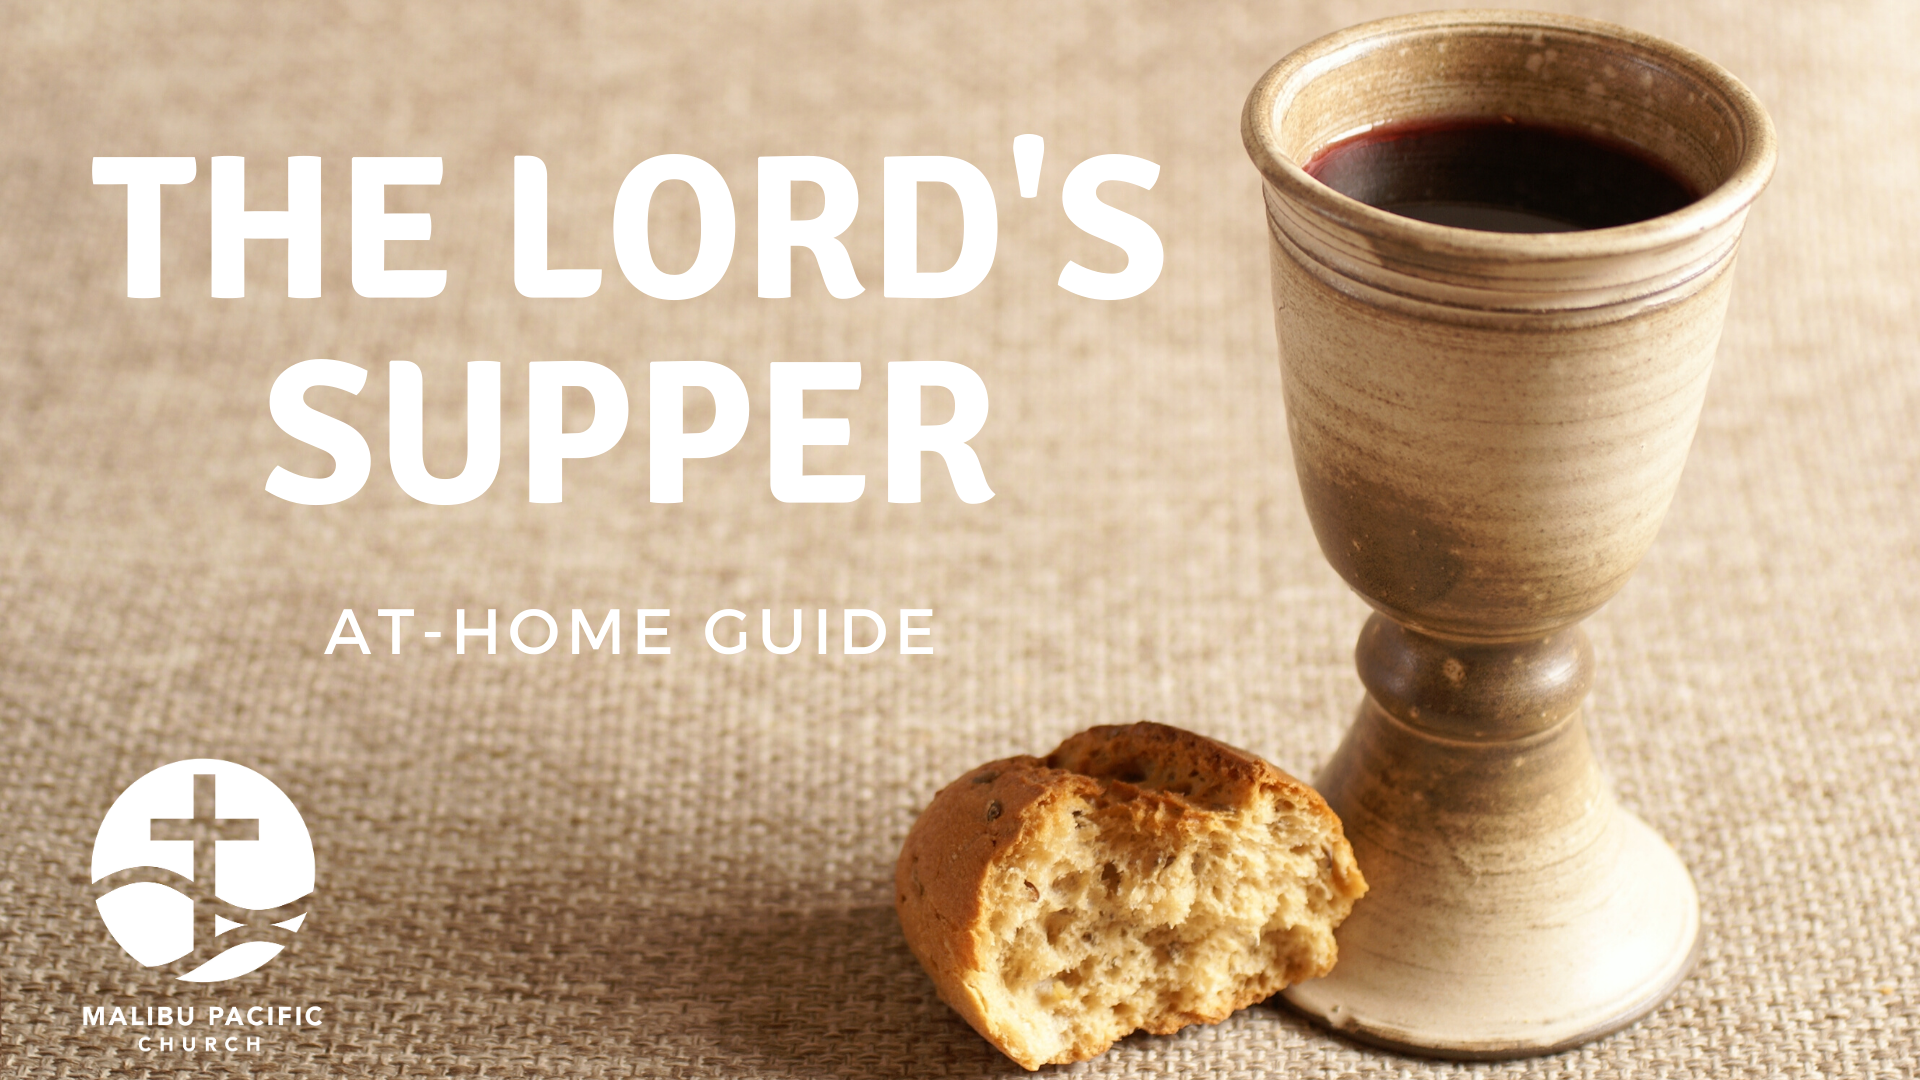 Lord's Supper At-Home Guide image